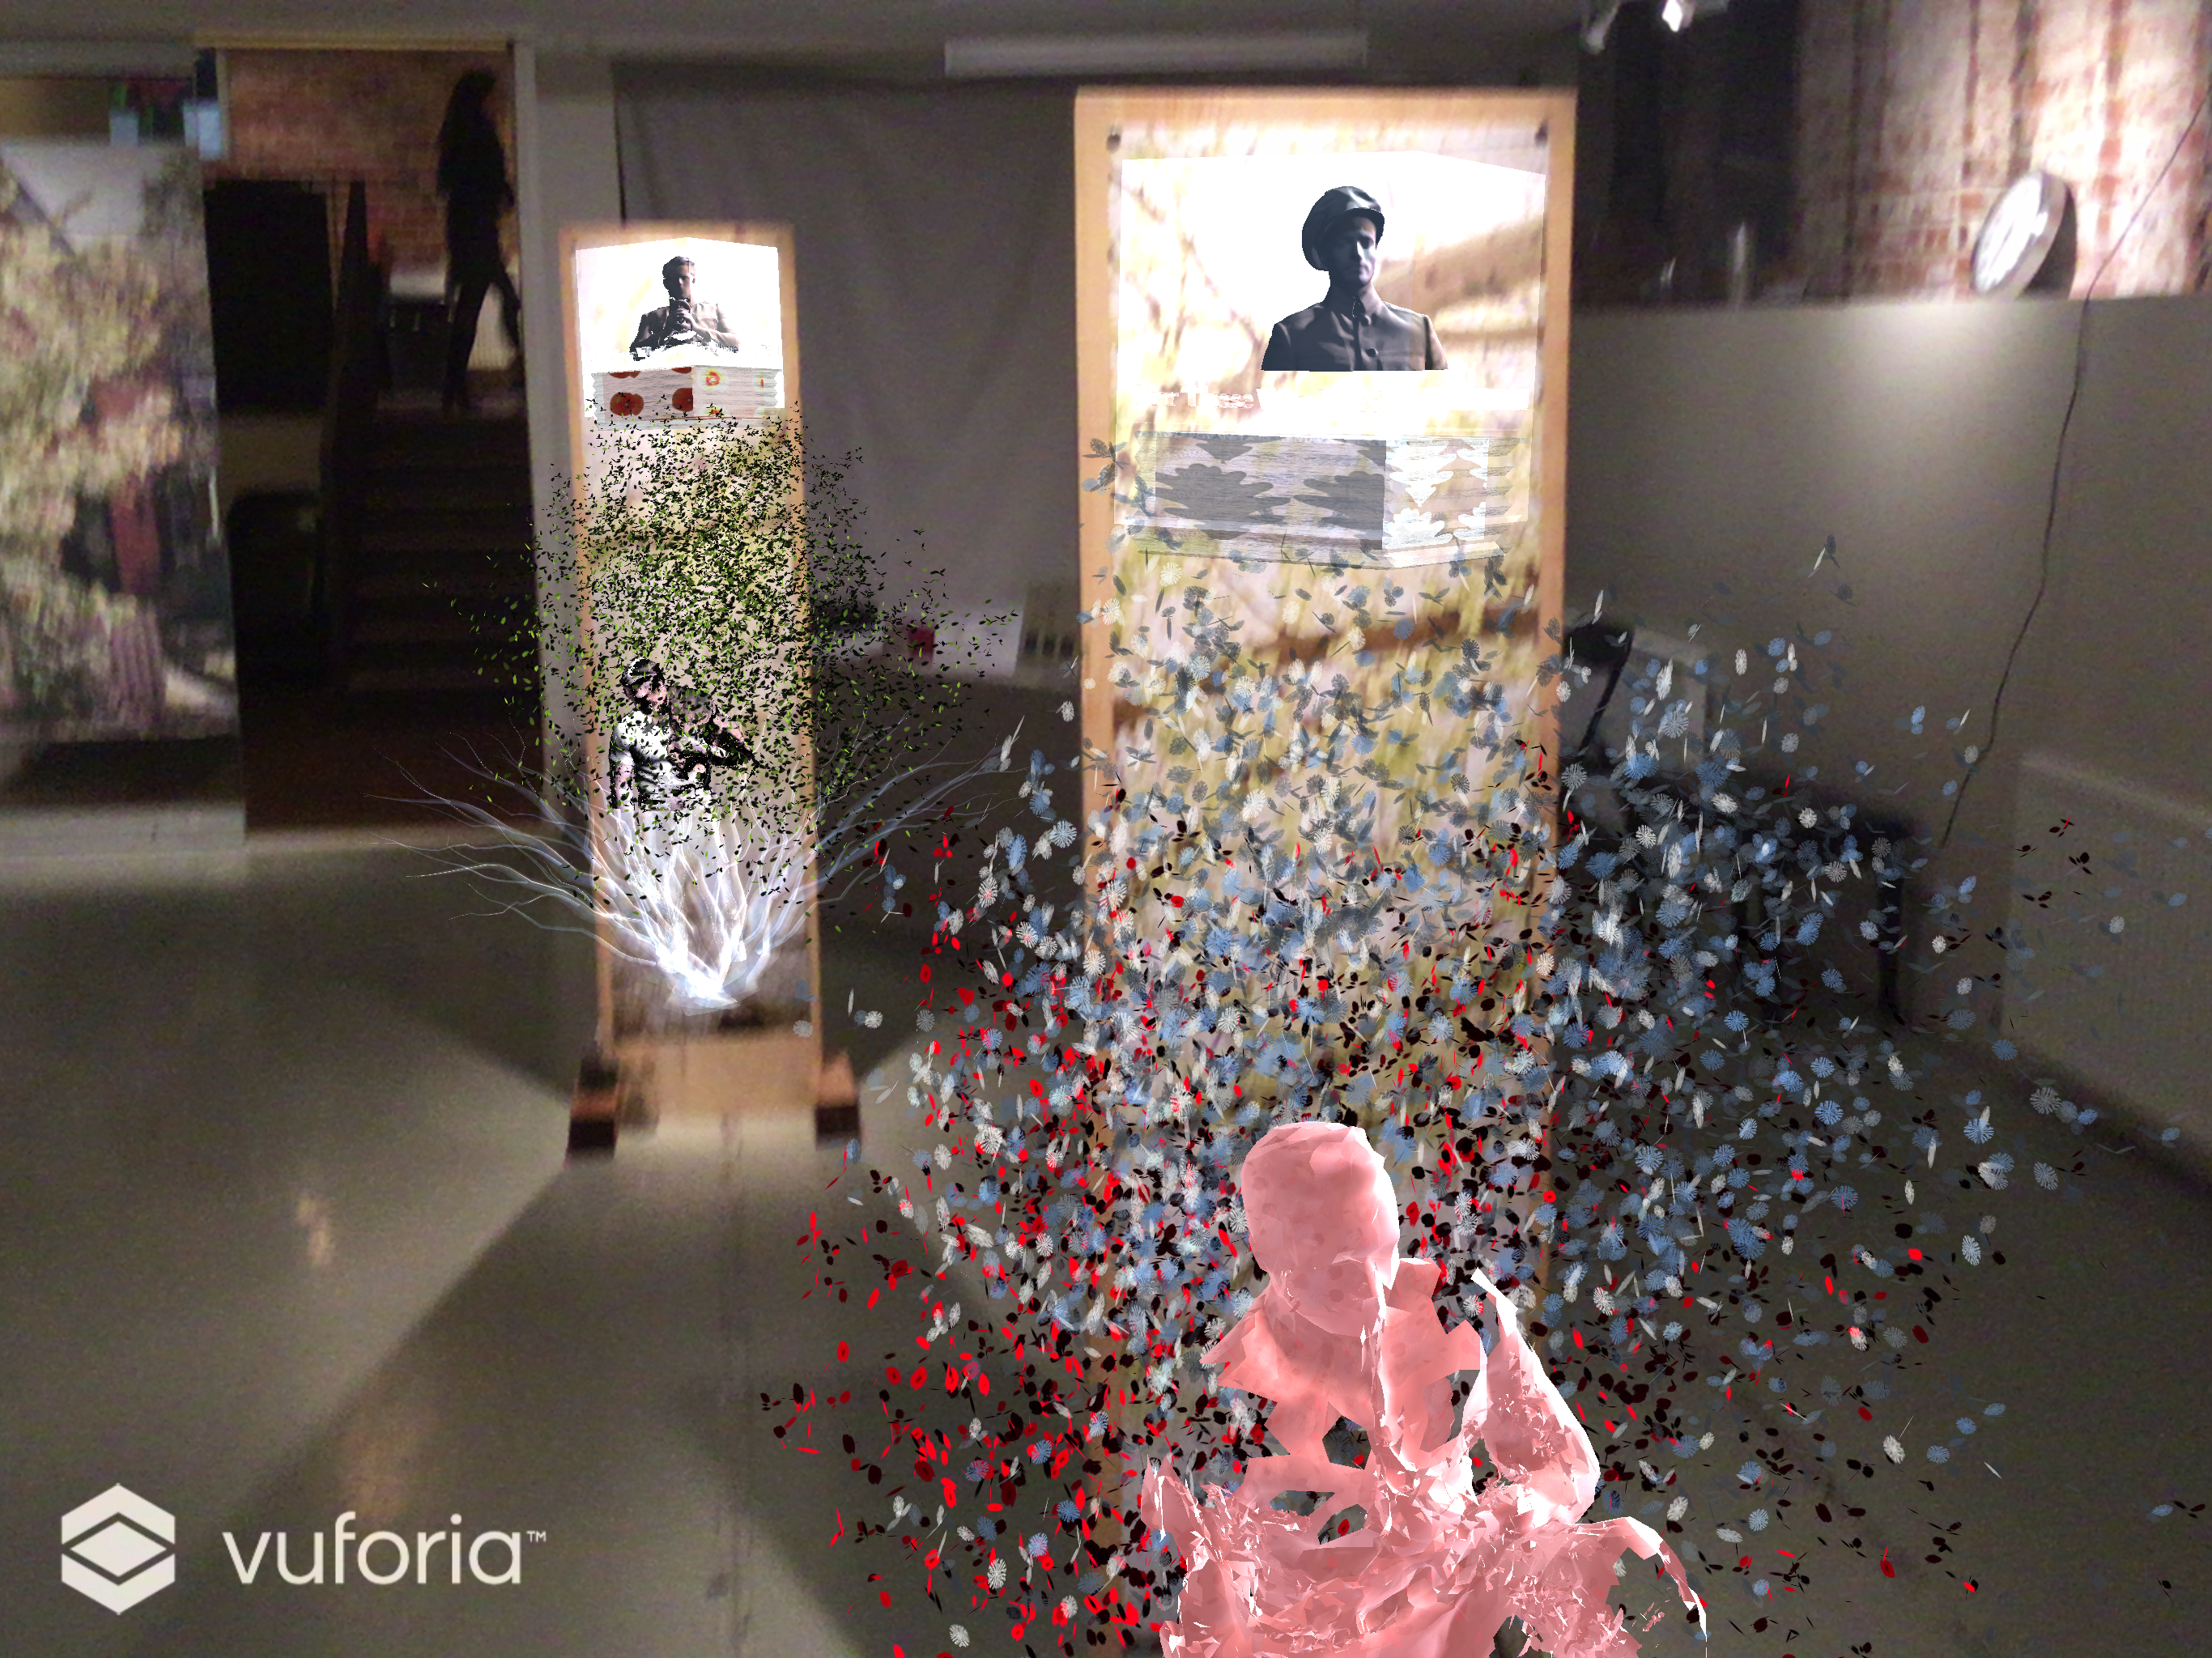 AR content from 2 images